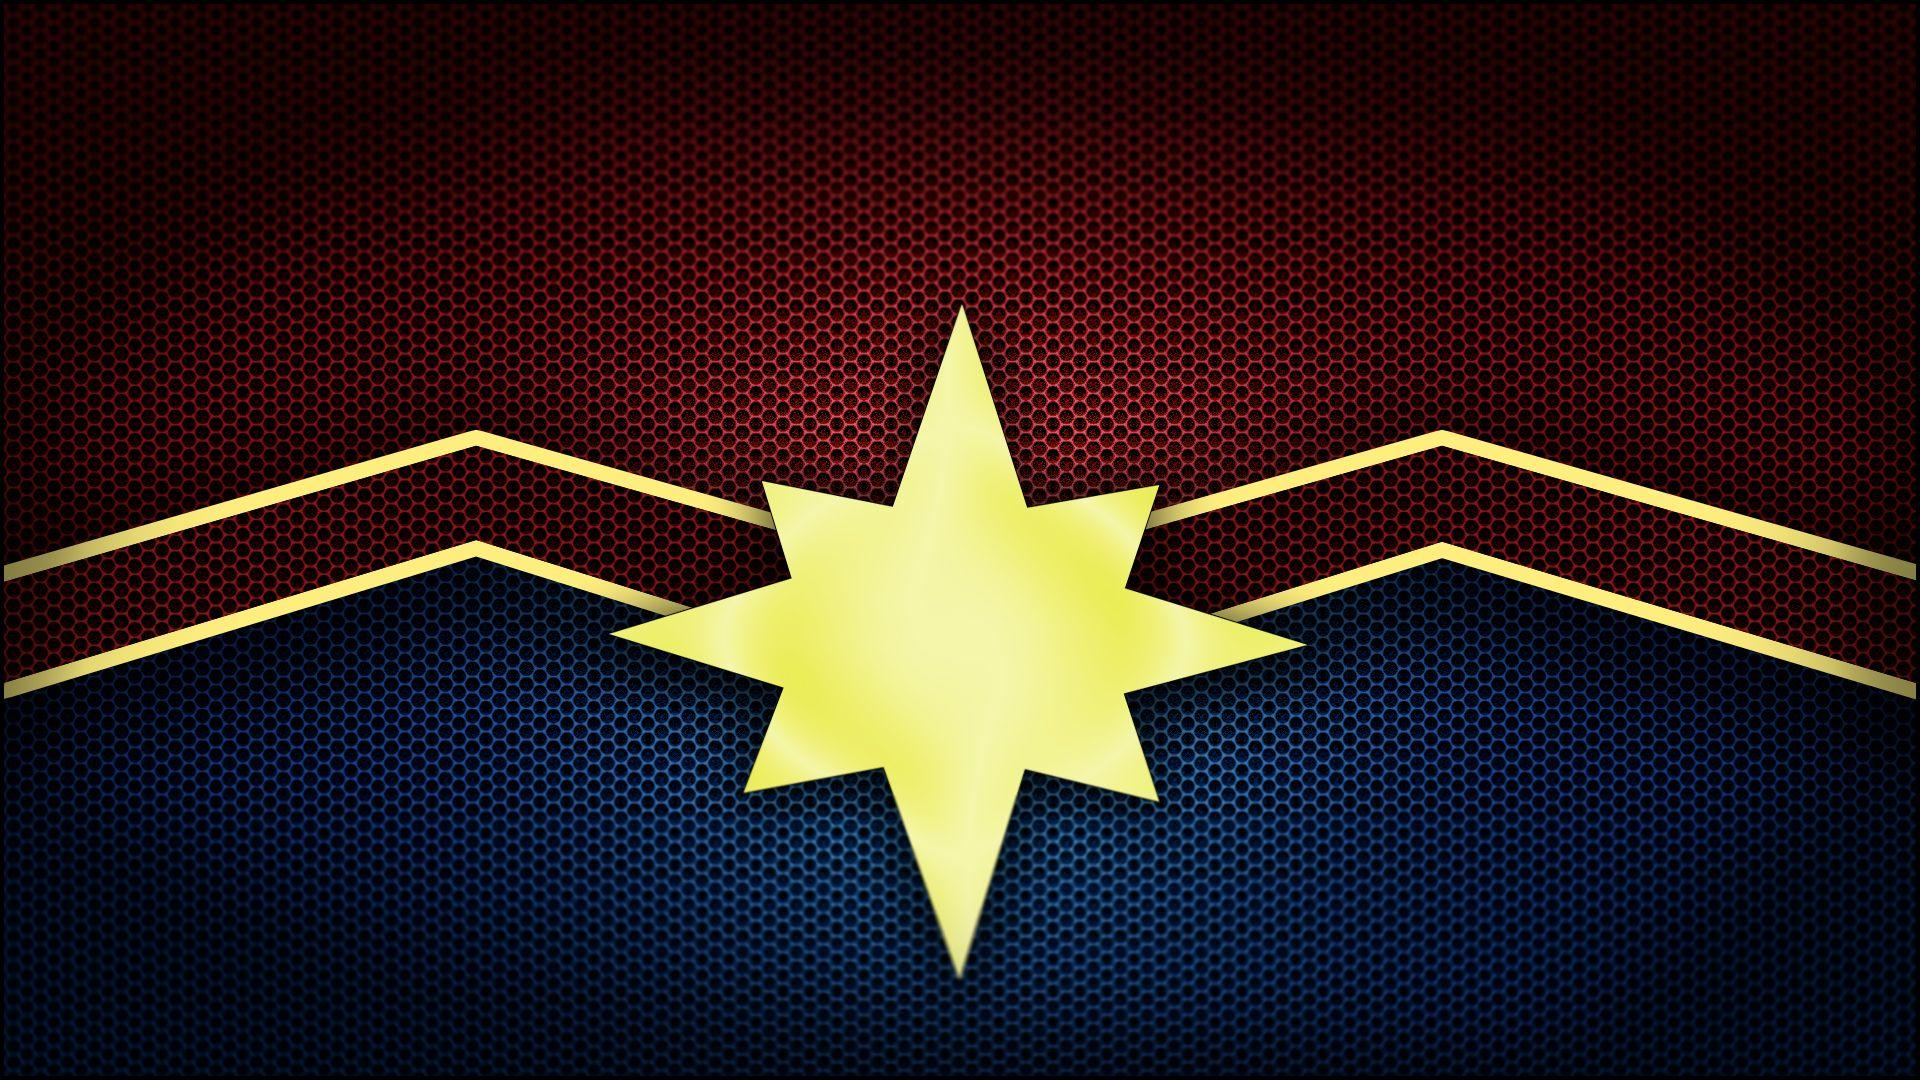 Captain Marvel Logo, HD Superheroes, 4k Wallpapers, Image